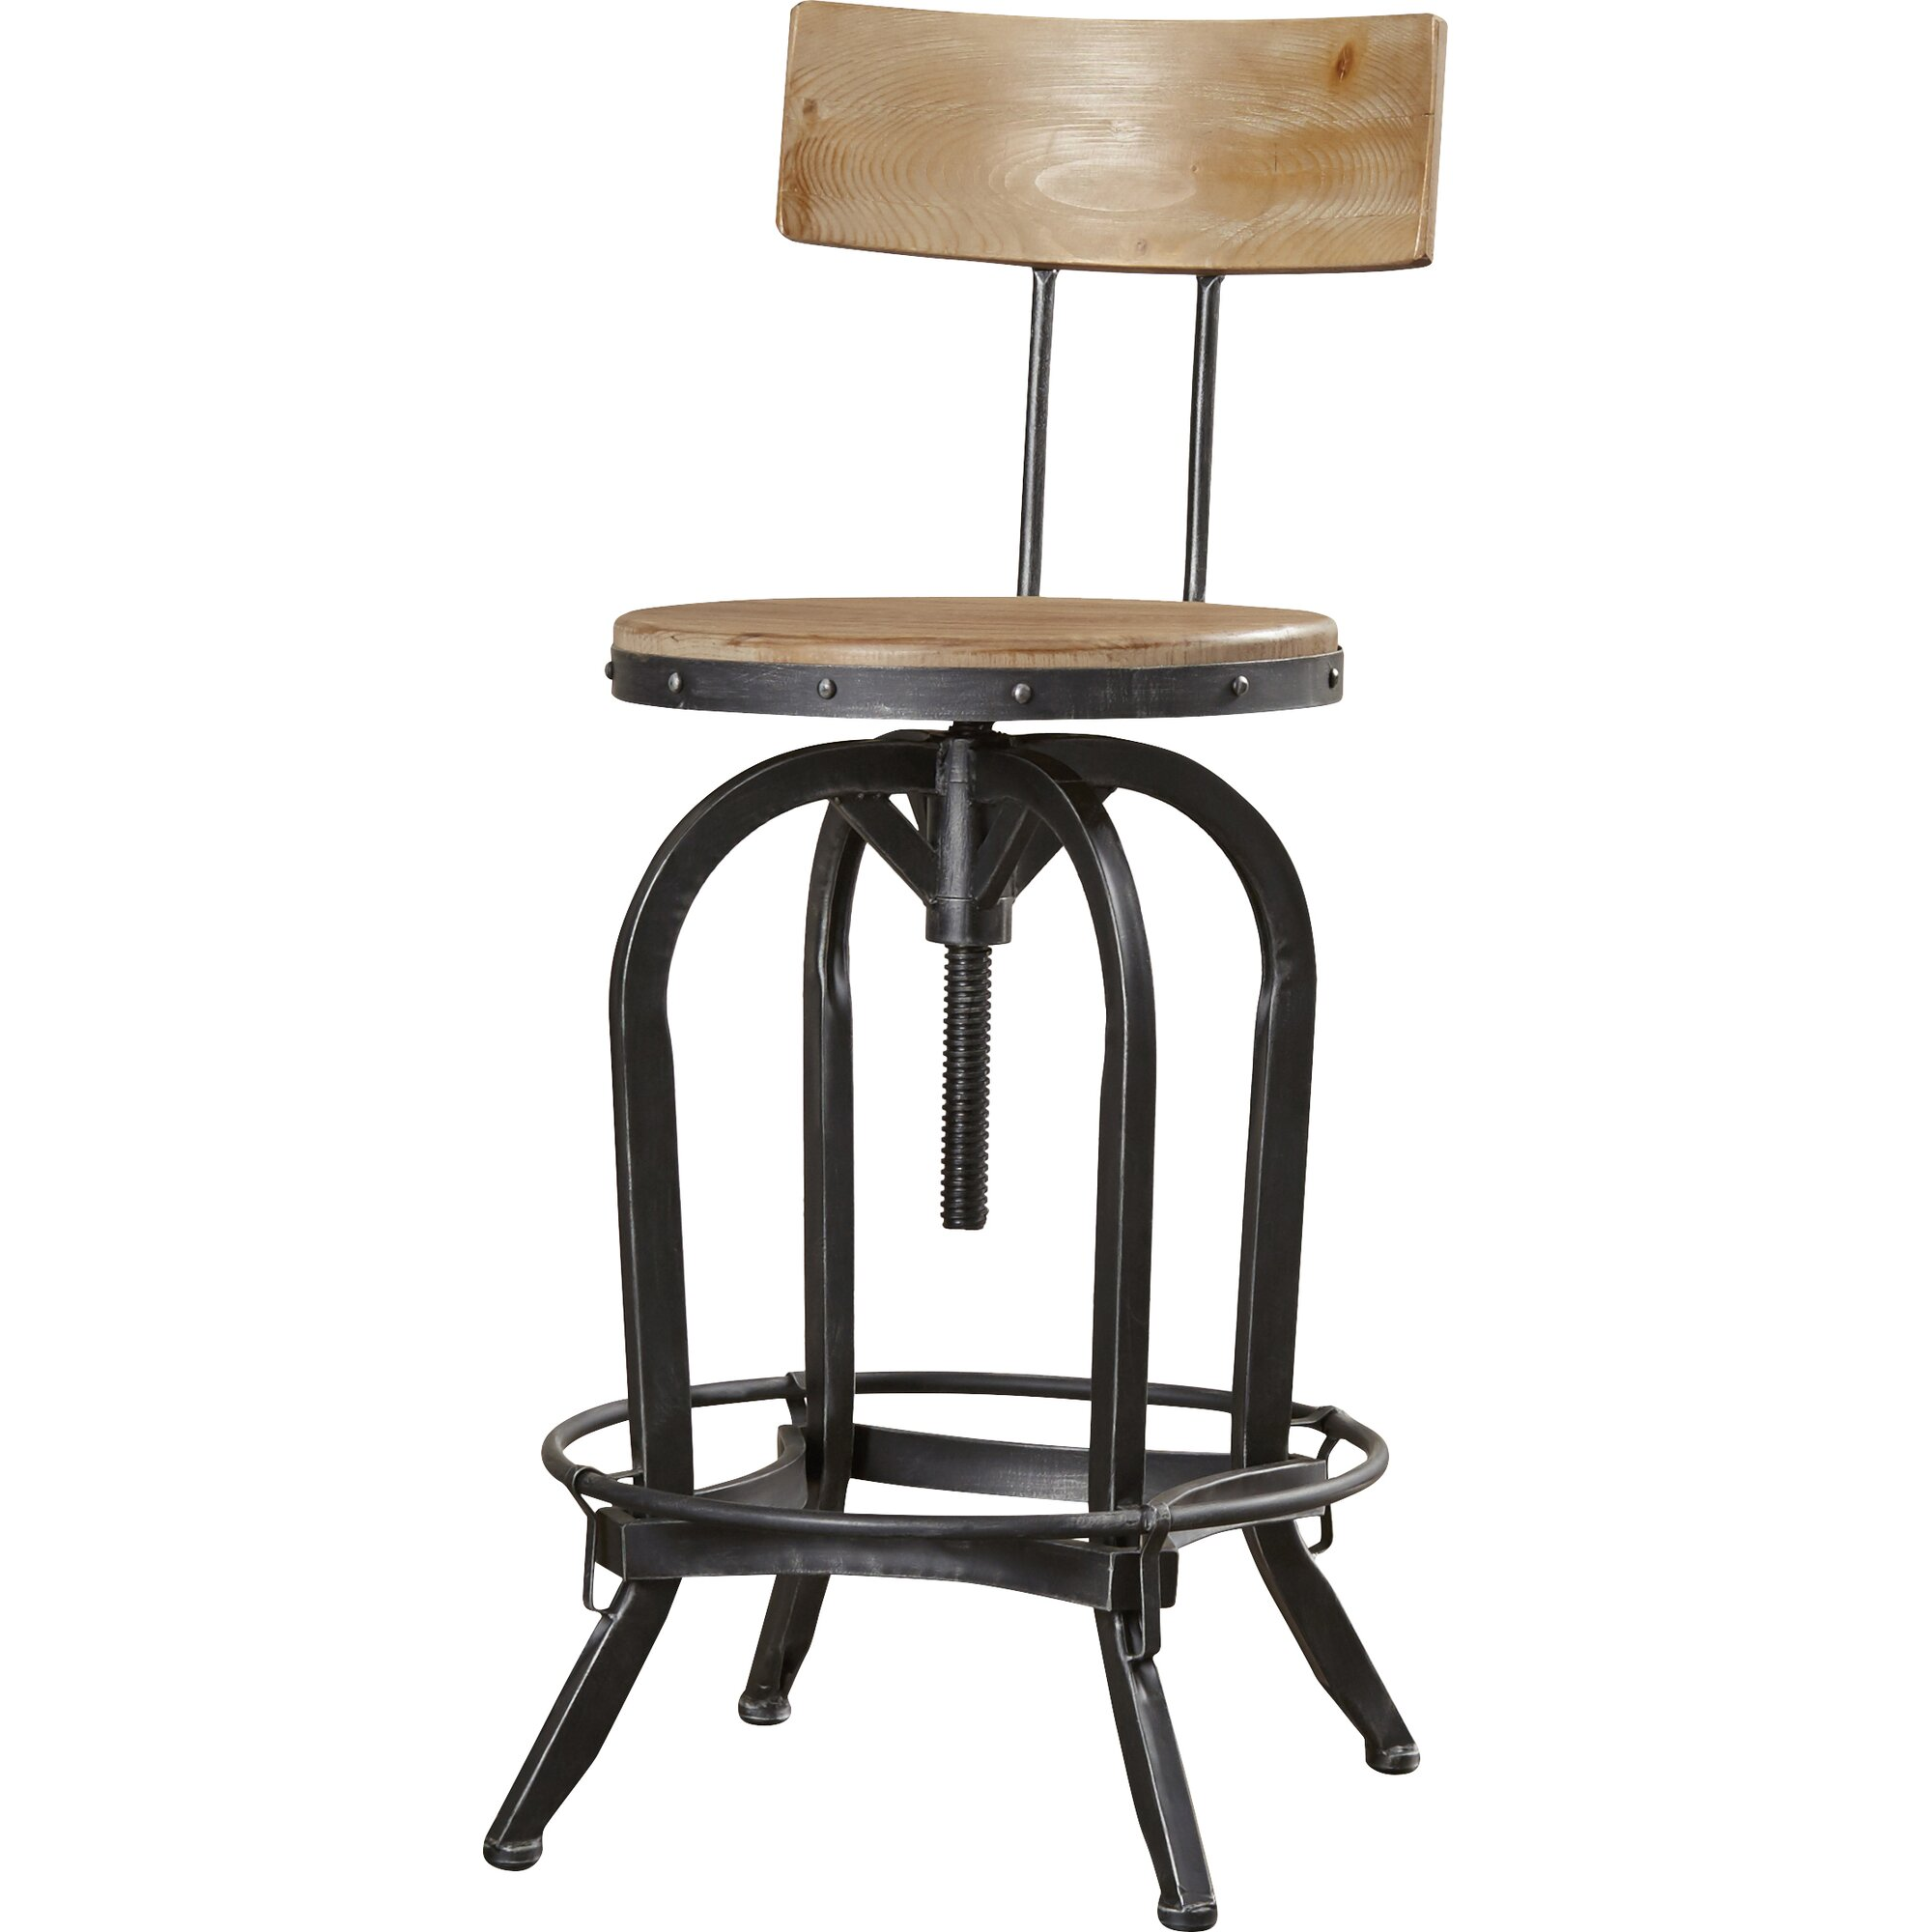 oria adjustable height swivel bar stool  reviews  birch lane - oria adjustable height swivel bar stool